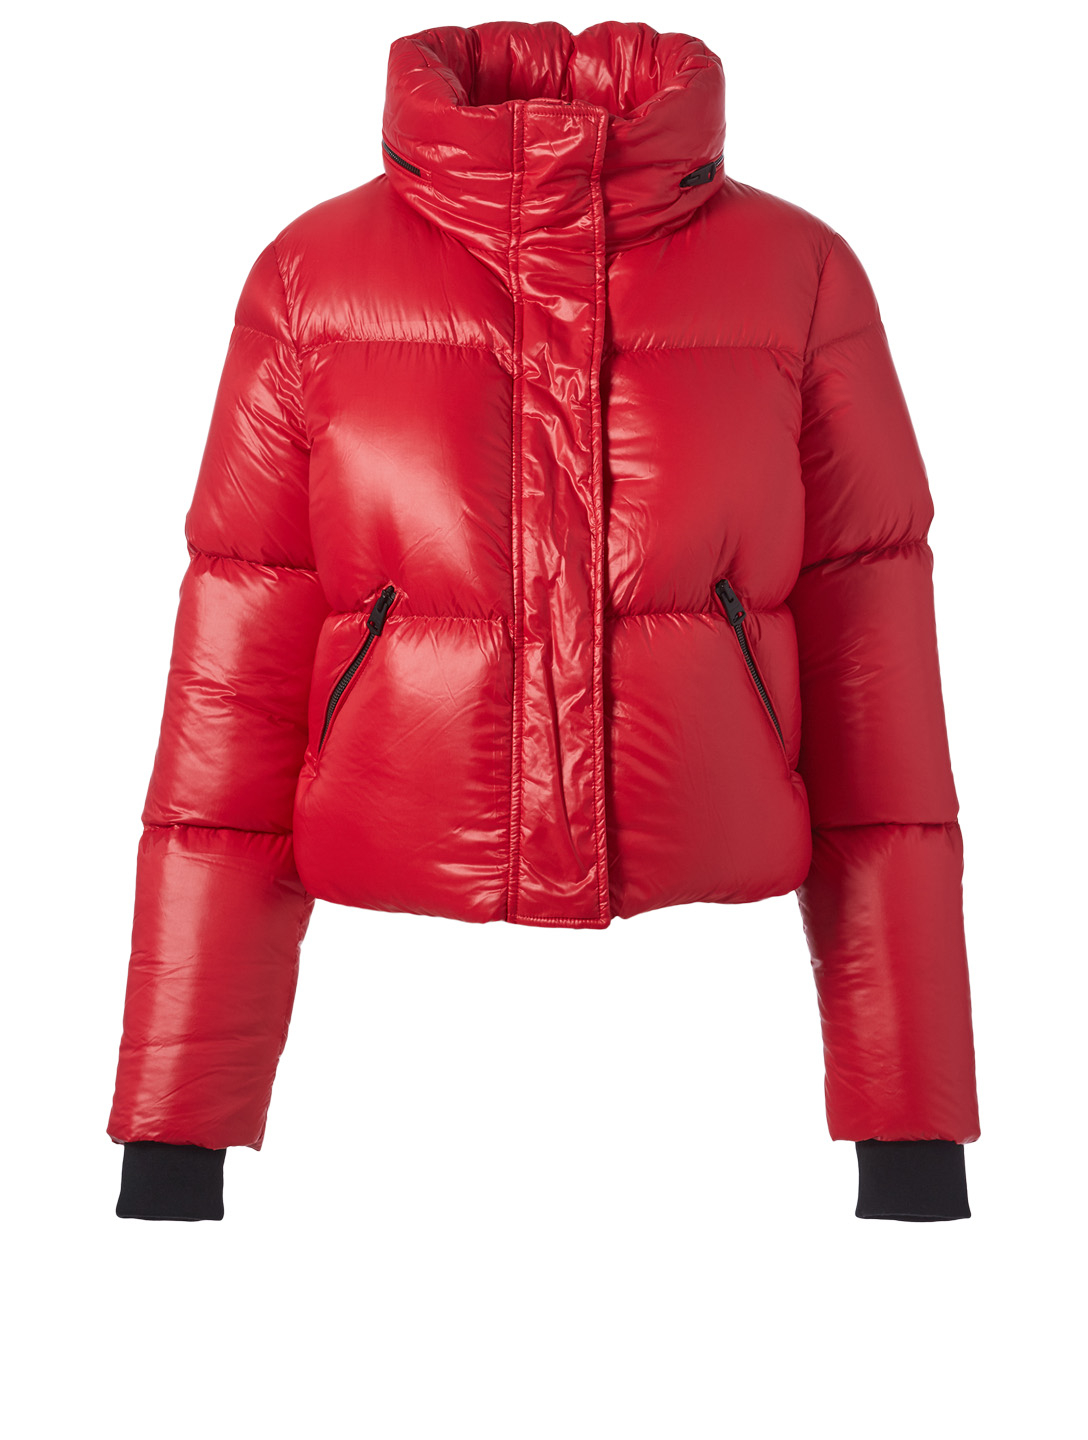 MACKAGE Mimi Down Puffer Jacket Designers Red